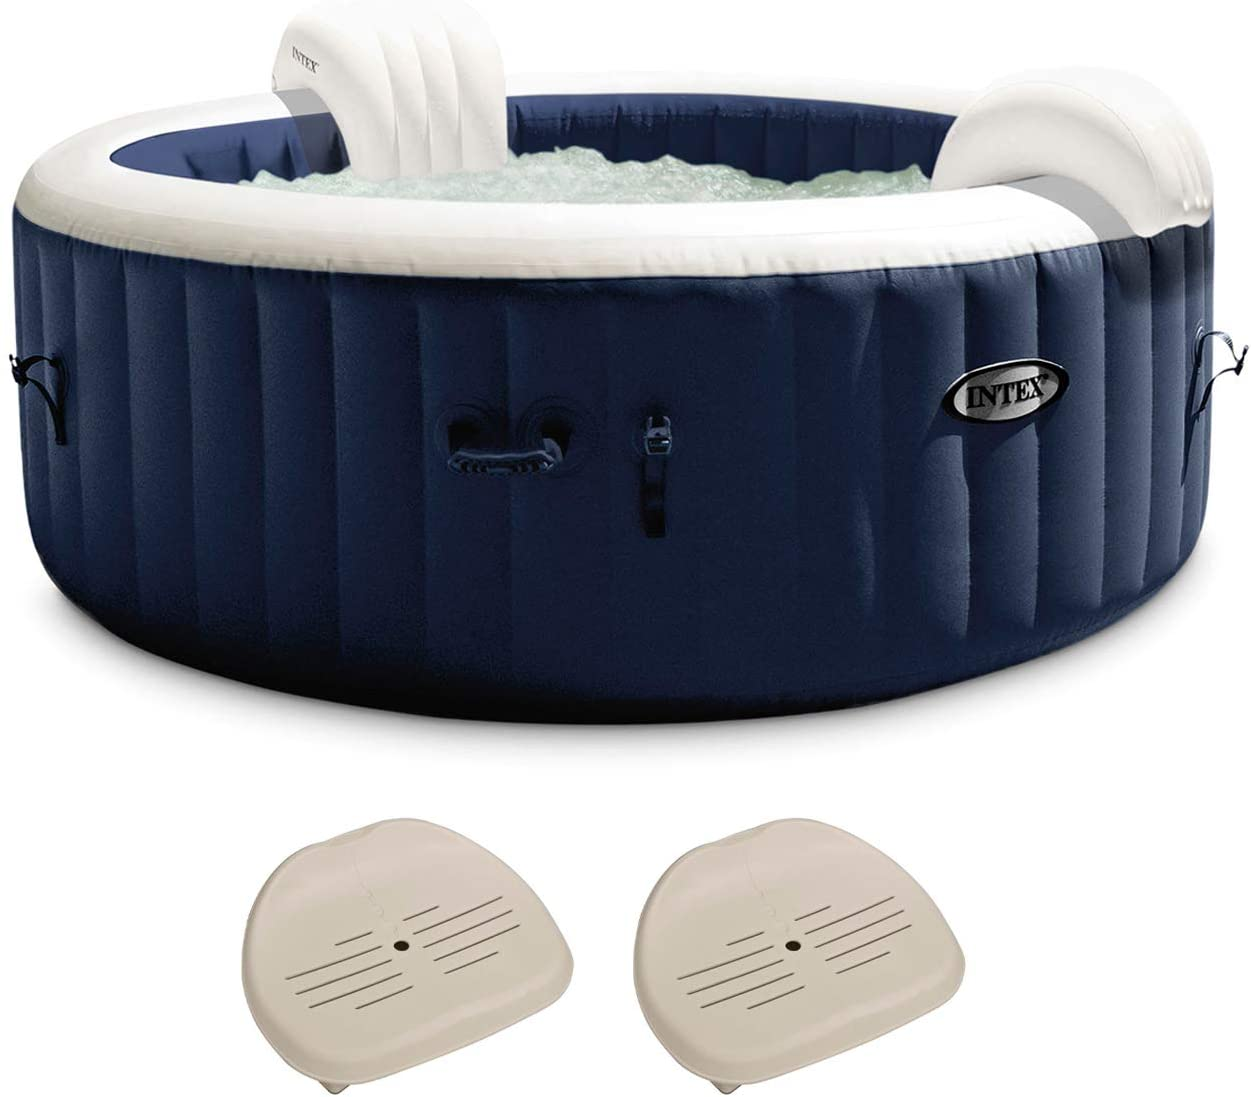 Intex 28431E PureSpa Plus 85in x 25in Outdoor Portable Inflatable 6 Person Round Hot Tub Spa with 170 Bubble Jets, Cover, Built in Heater Pump, and 2 Non-Slip Seats, Navy